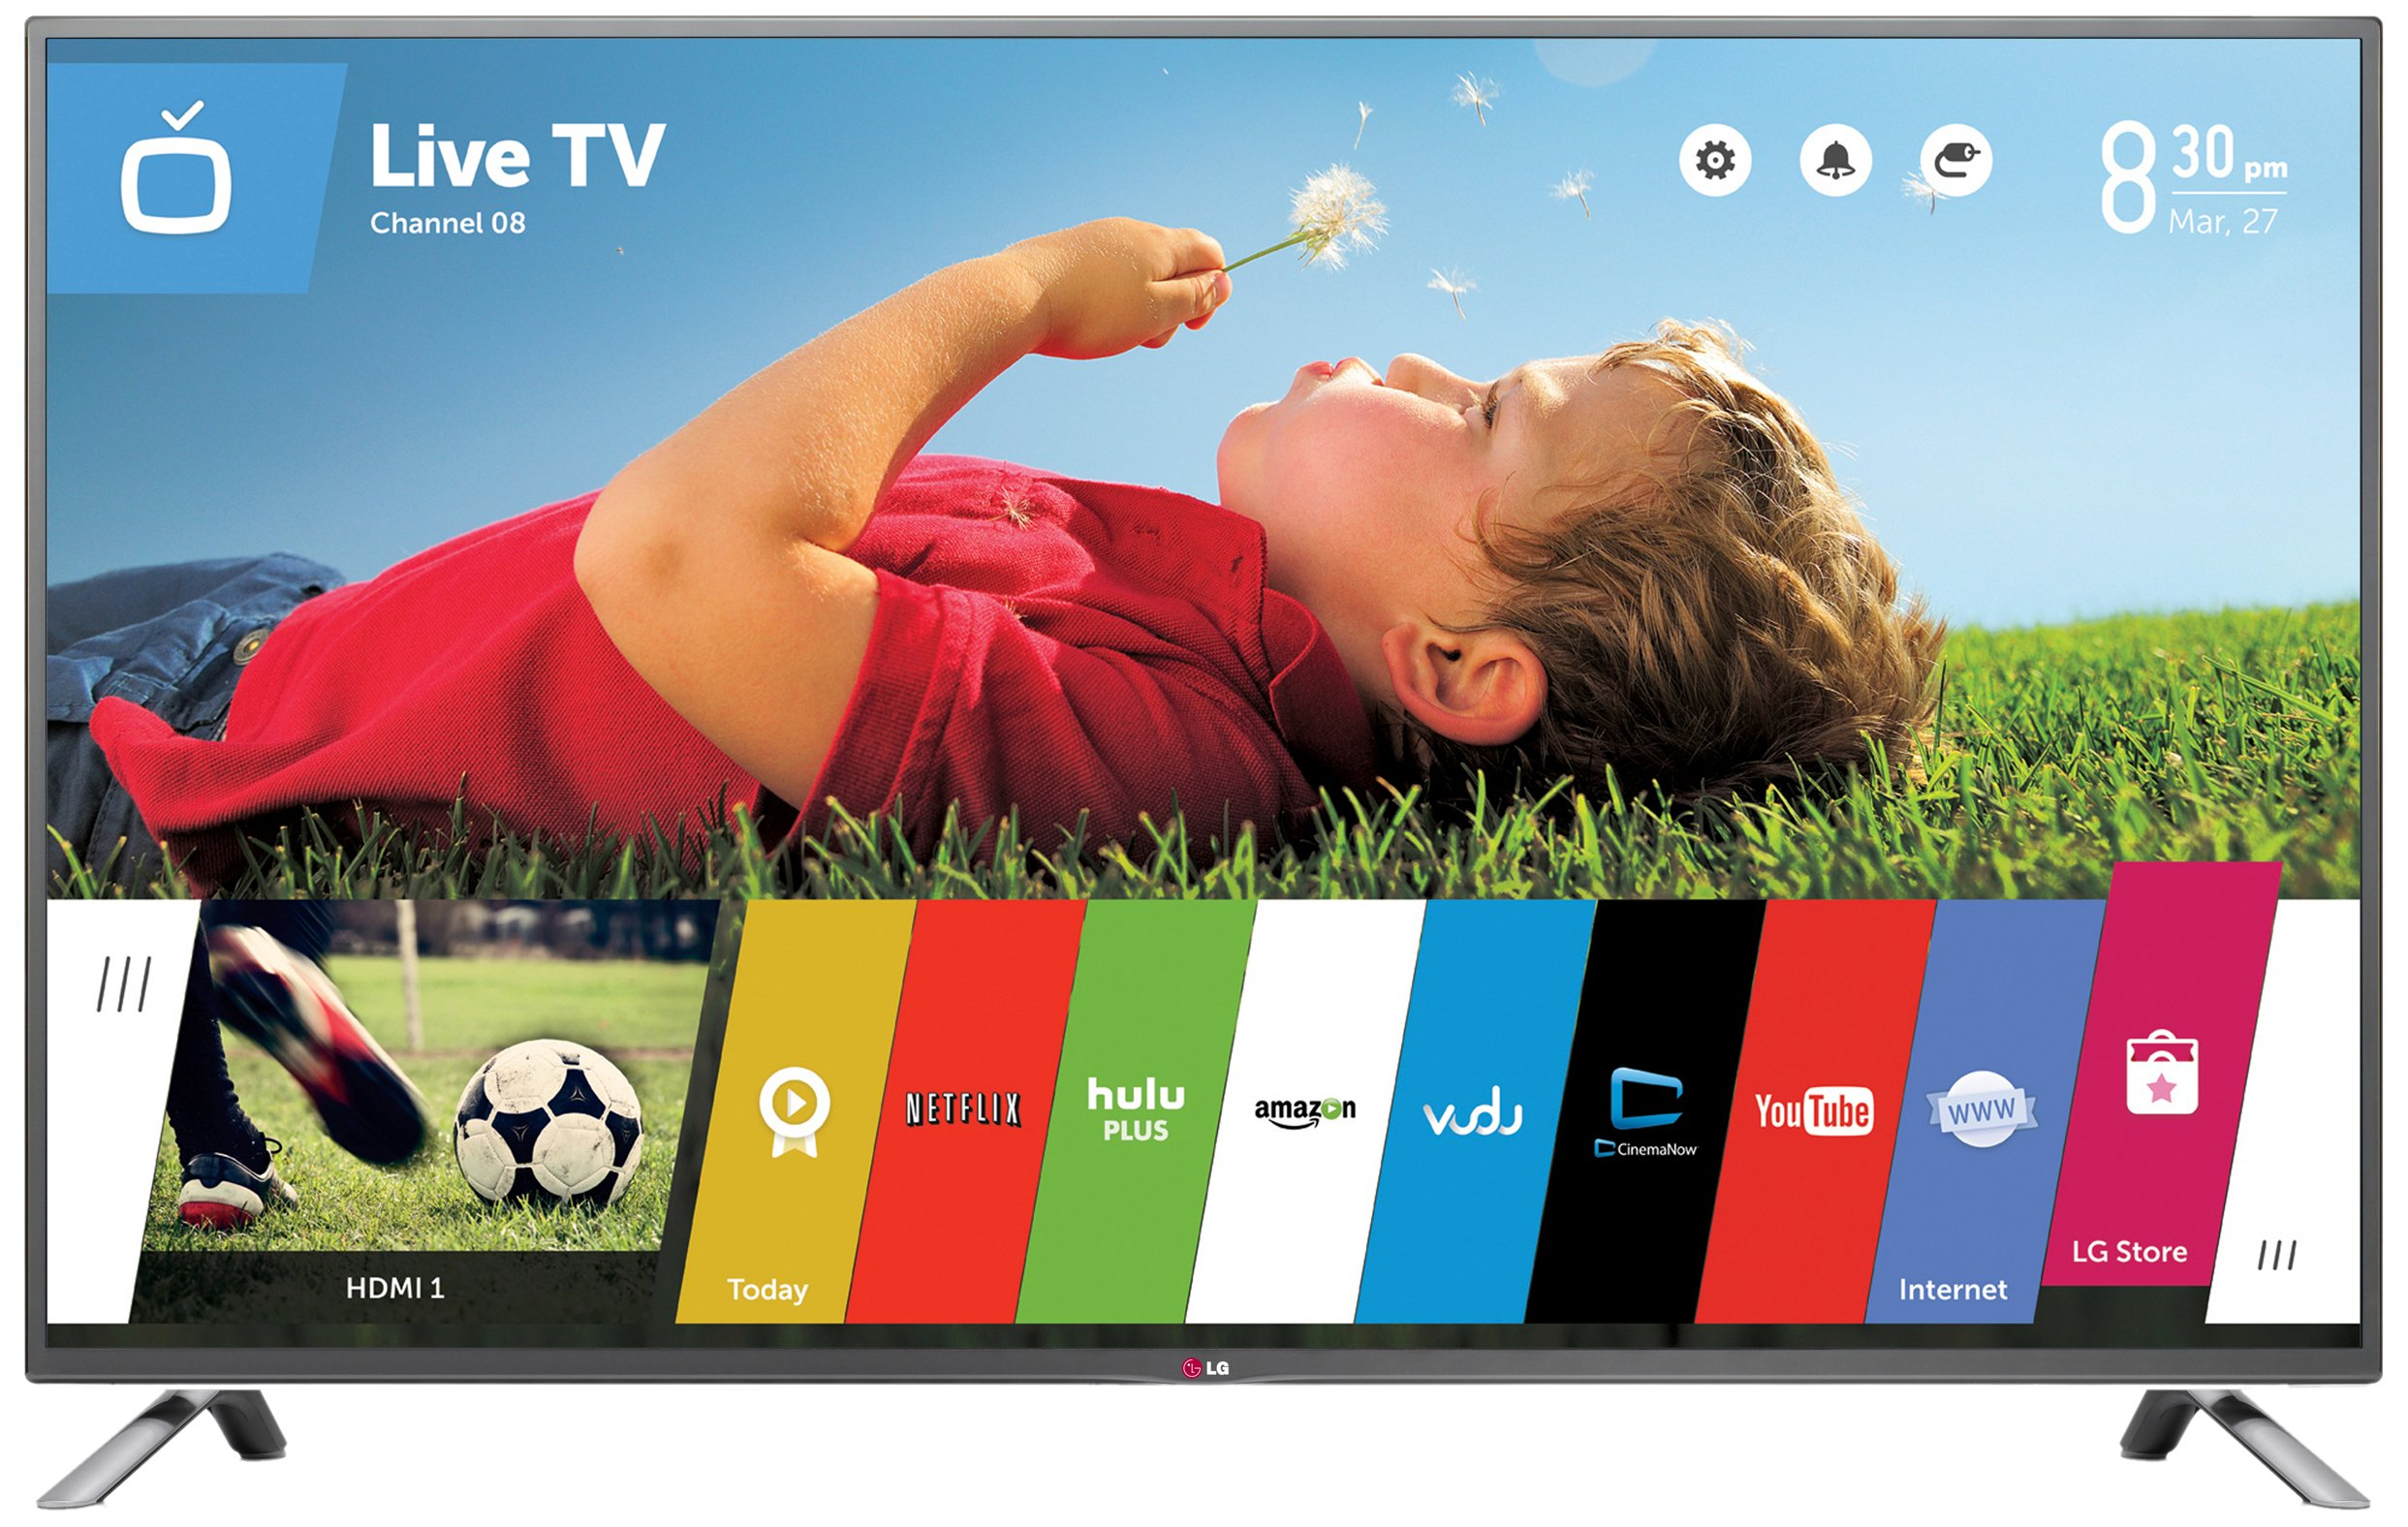 Smart LED TV: LG Electronics 60LB7100 60-Inch 1080p